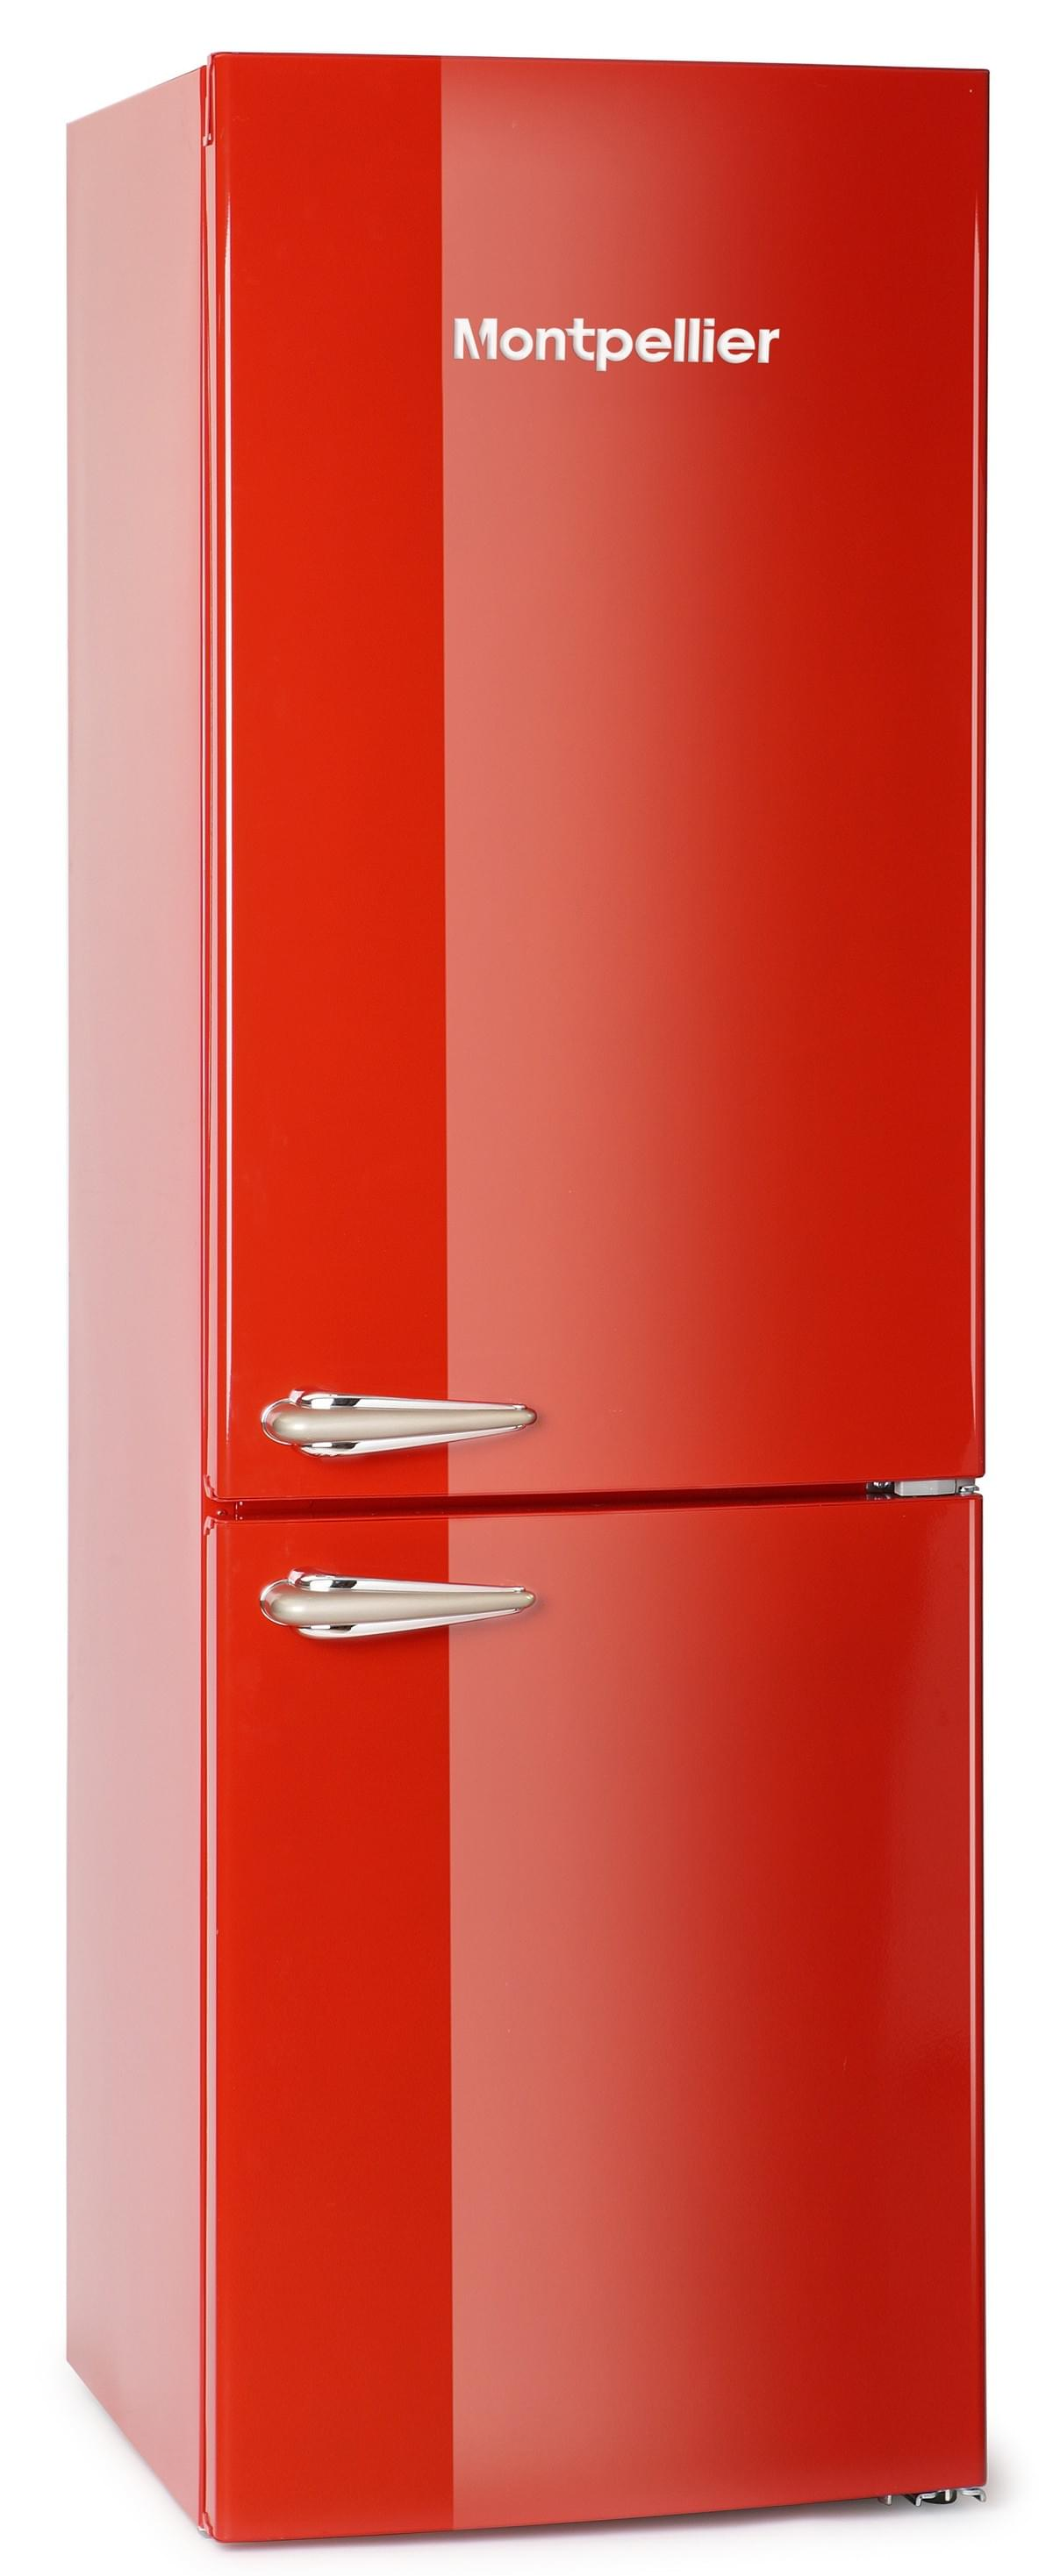 Montpellier retro colour fridge freezers in stock at M&G Energy